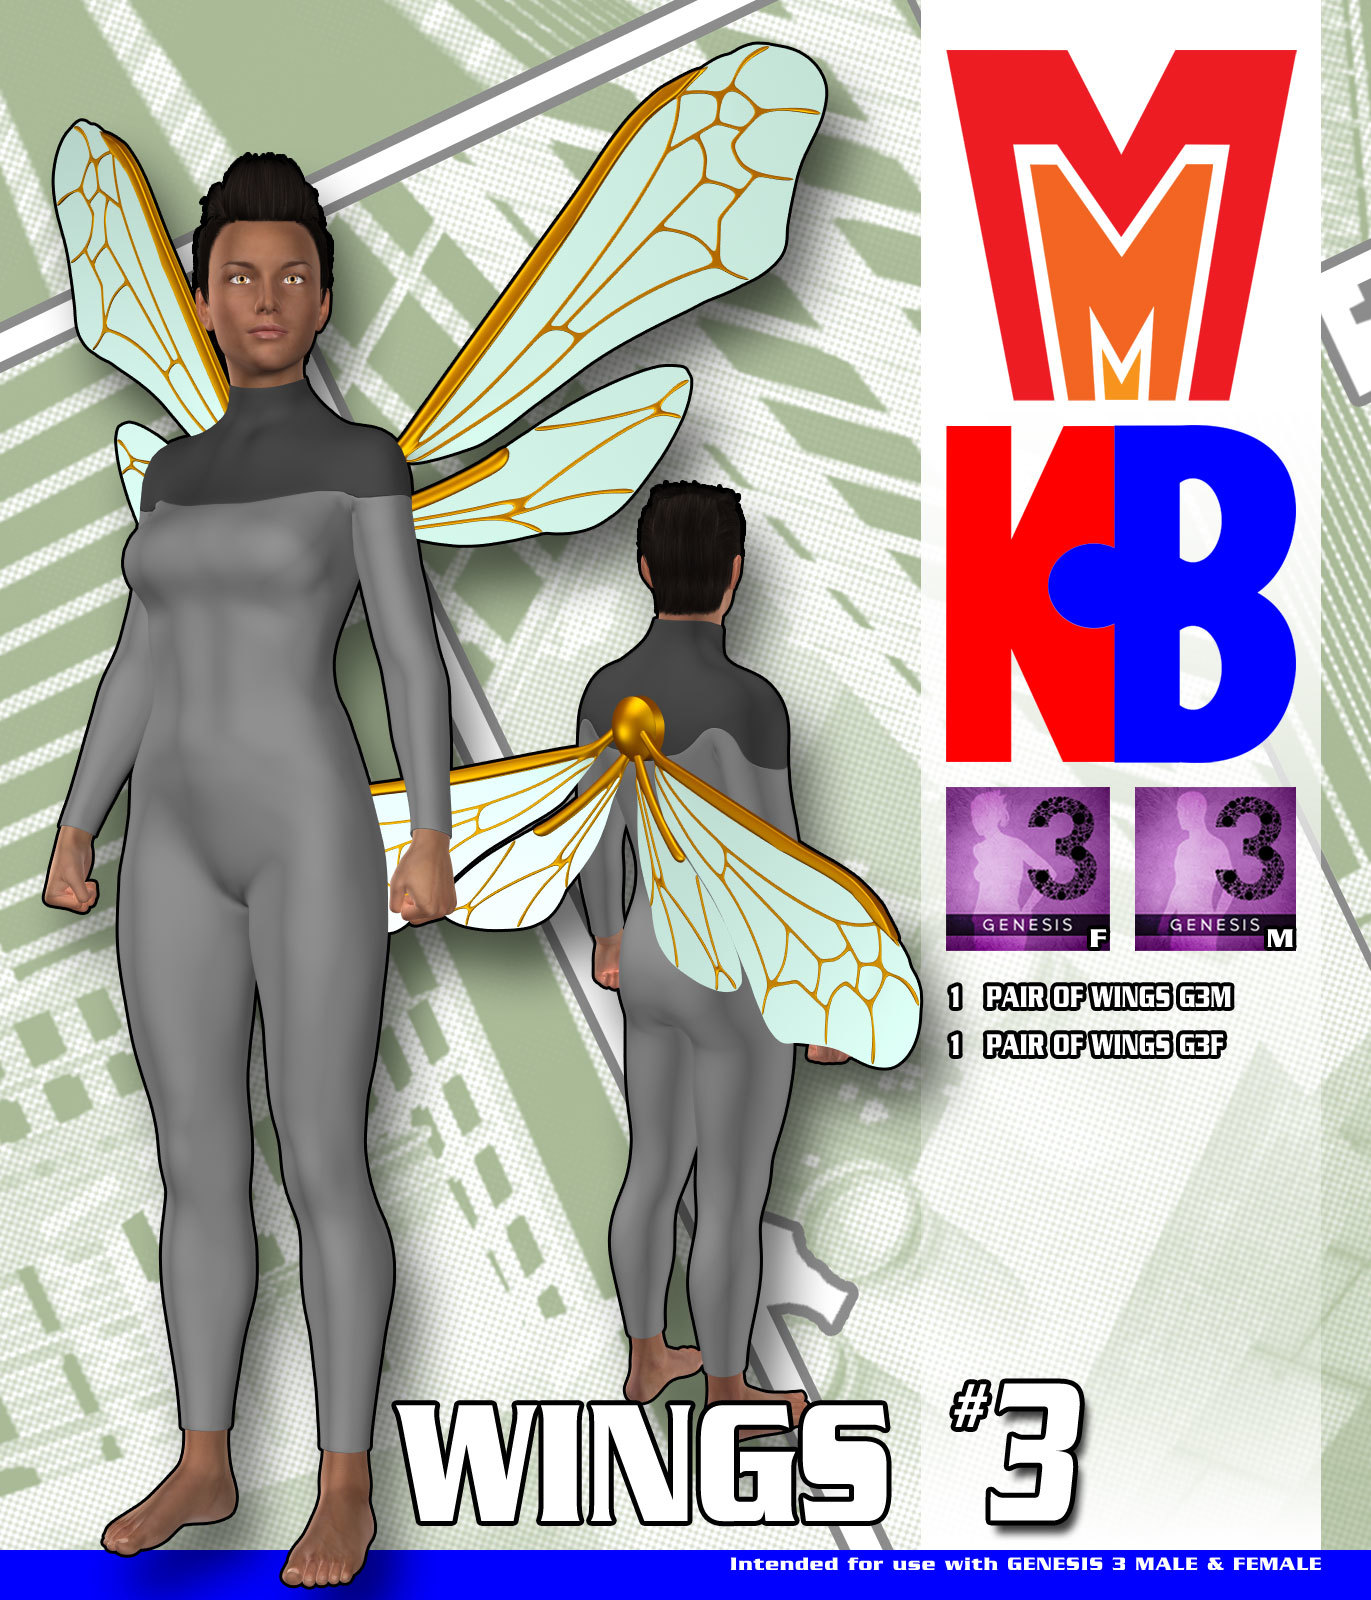 Wings 003 MMKBG3 by MightyMite